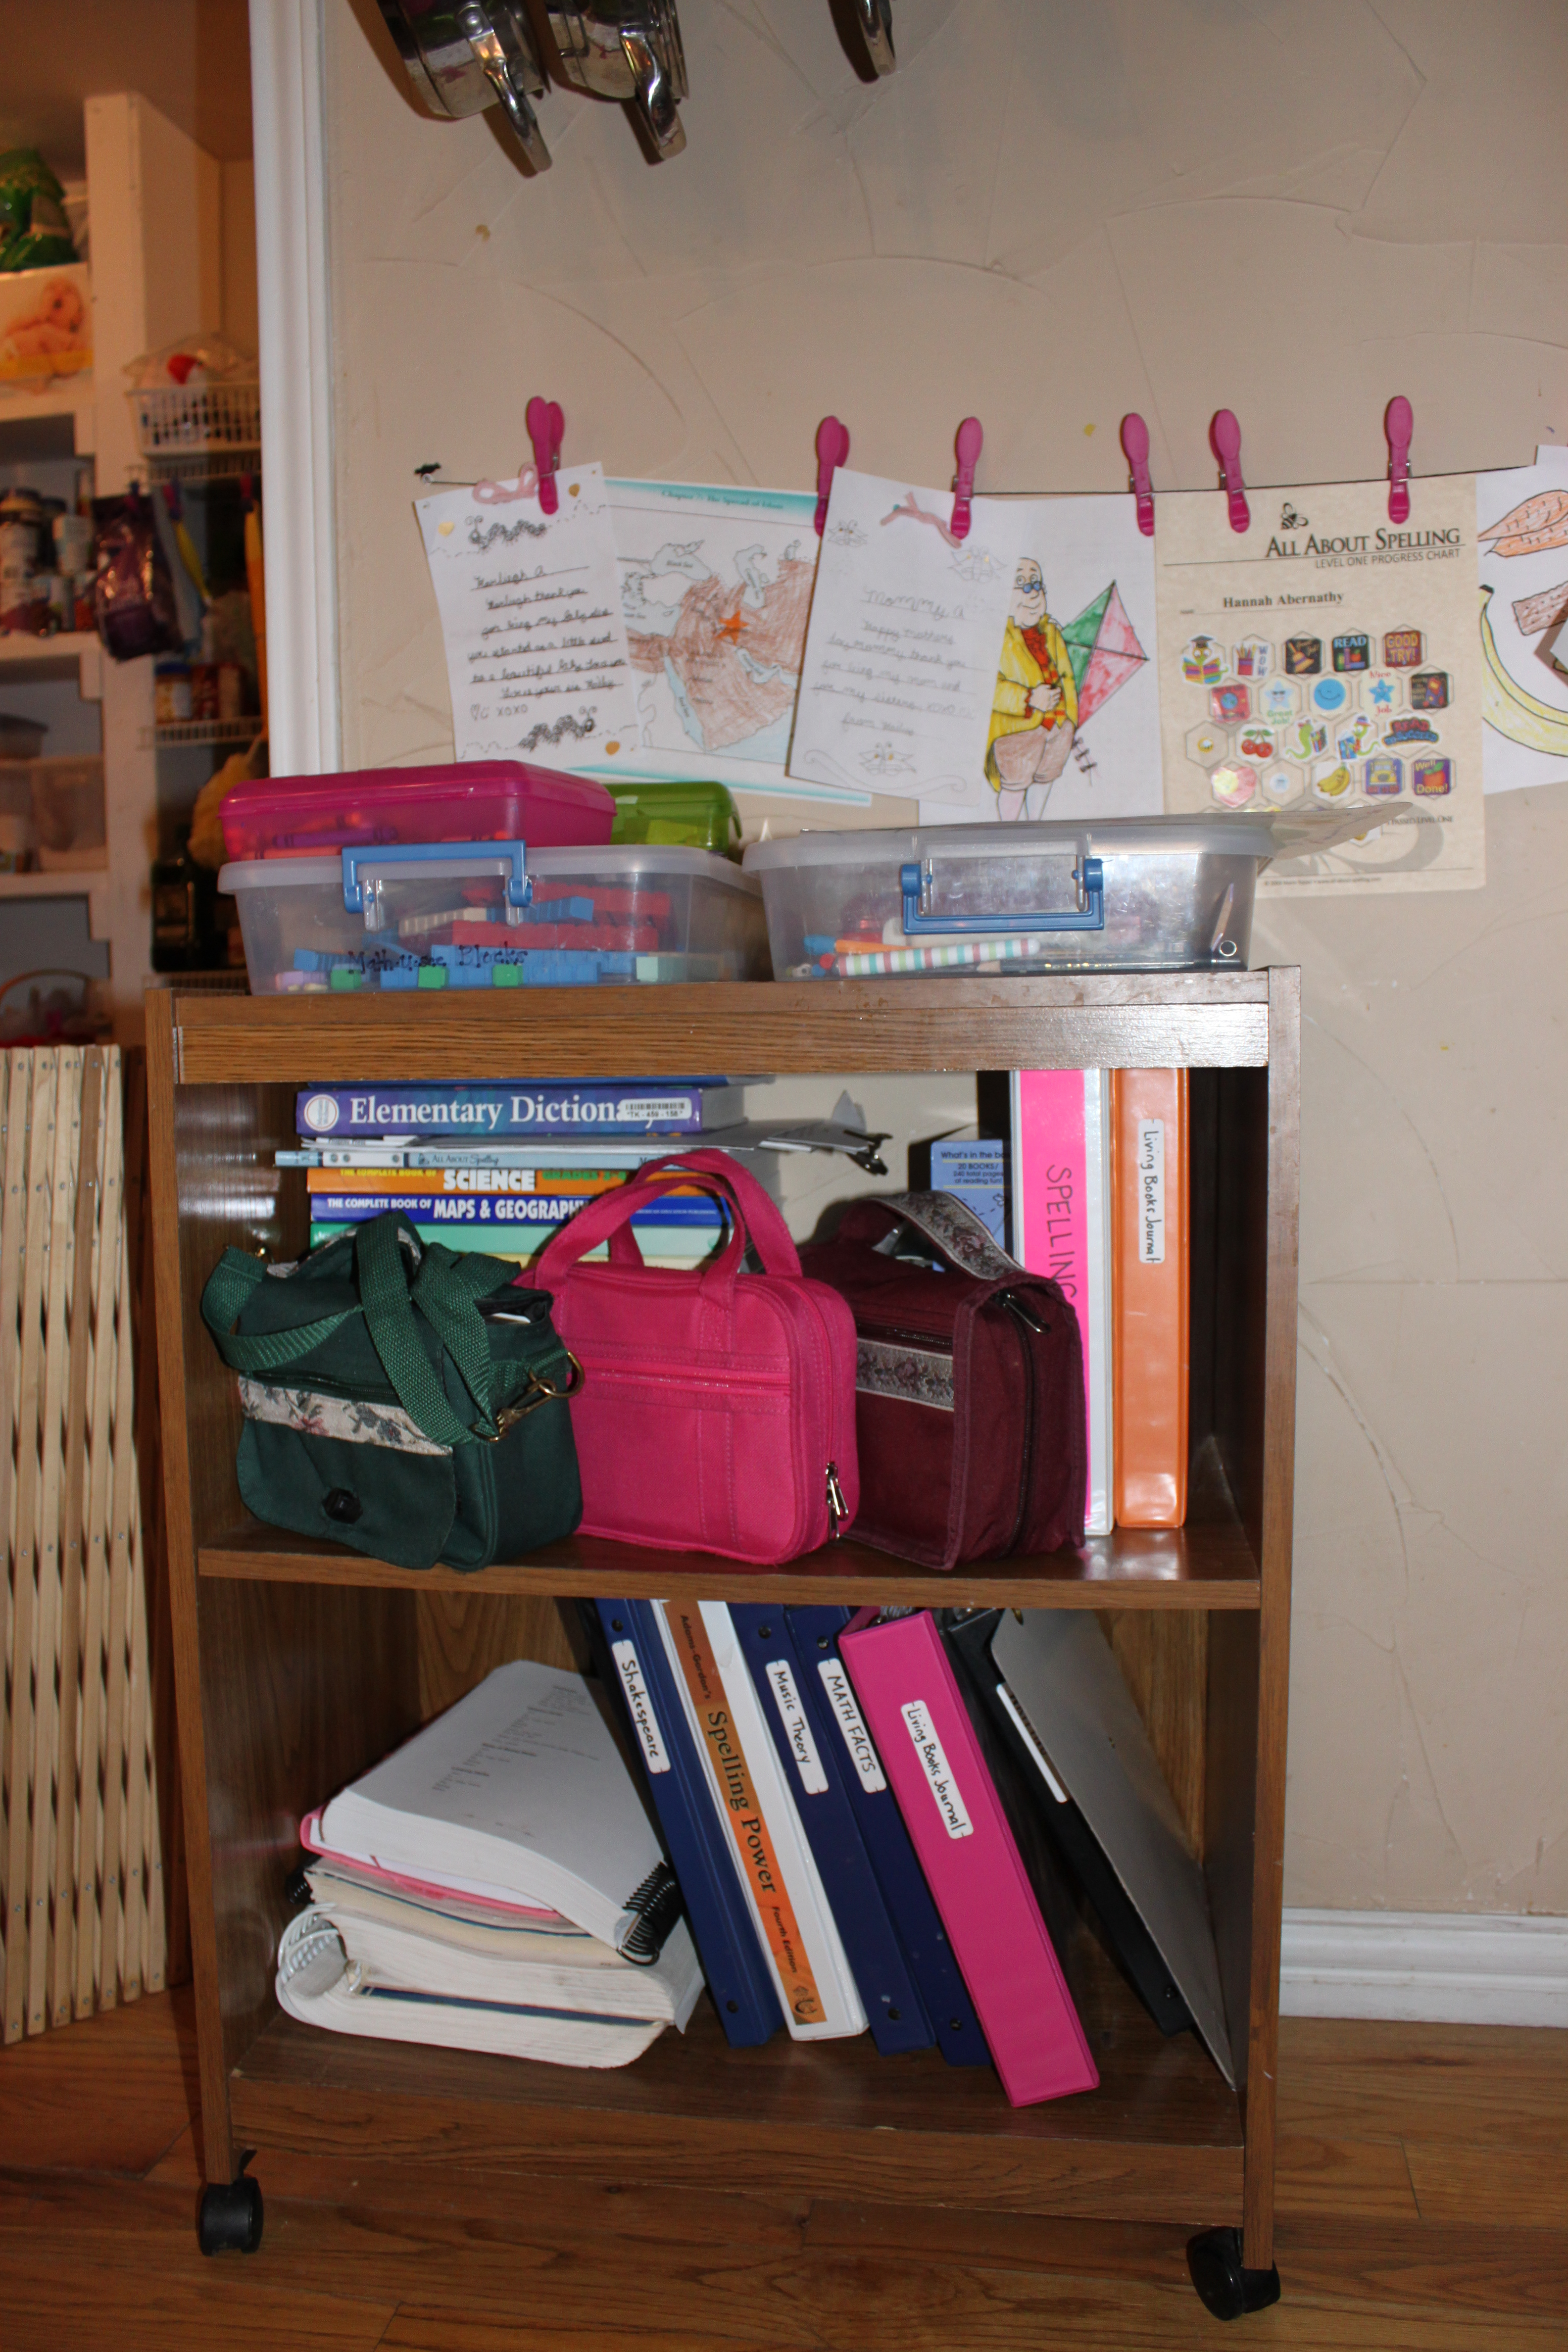 My Old Microwave Book Cart - I totally re-purposed this.  Don't you want to pin this awesomeness?